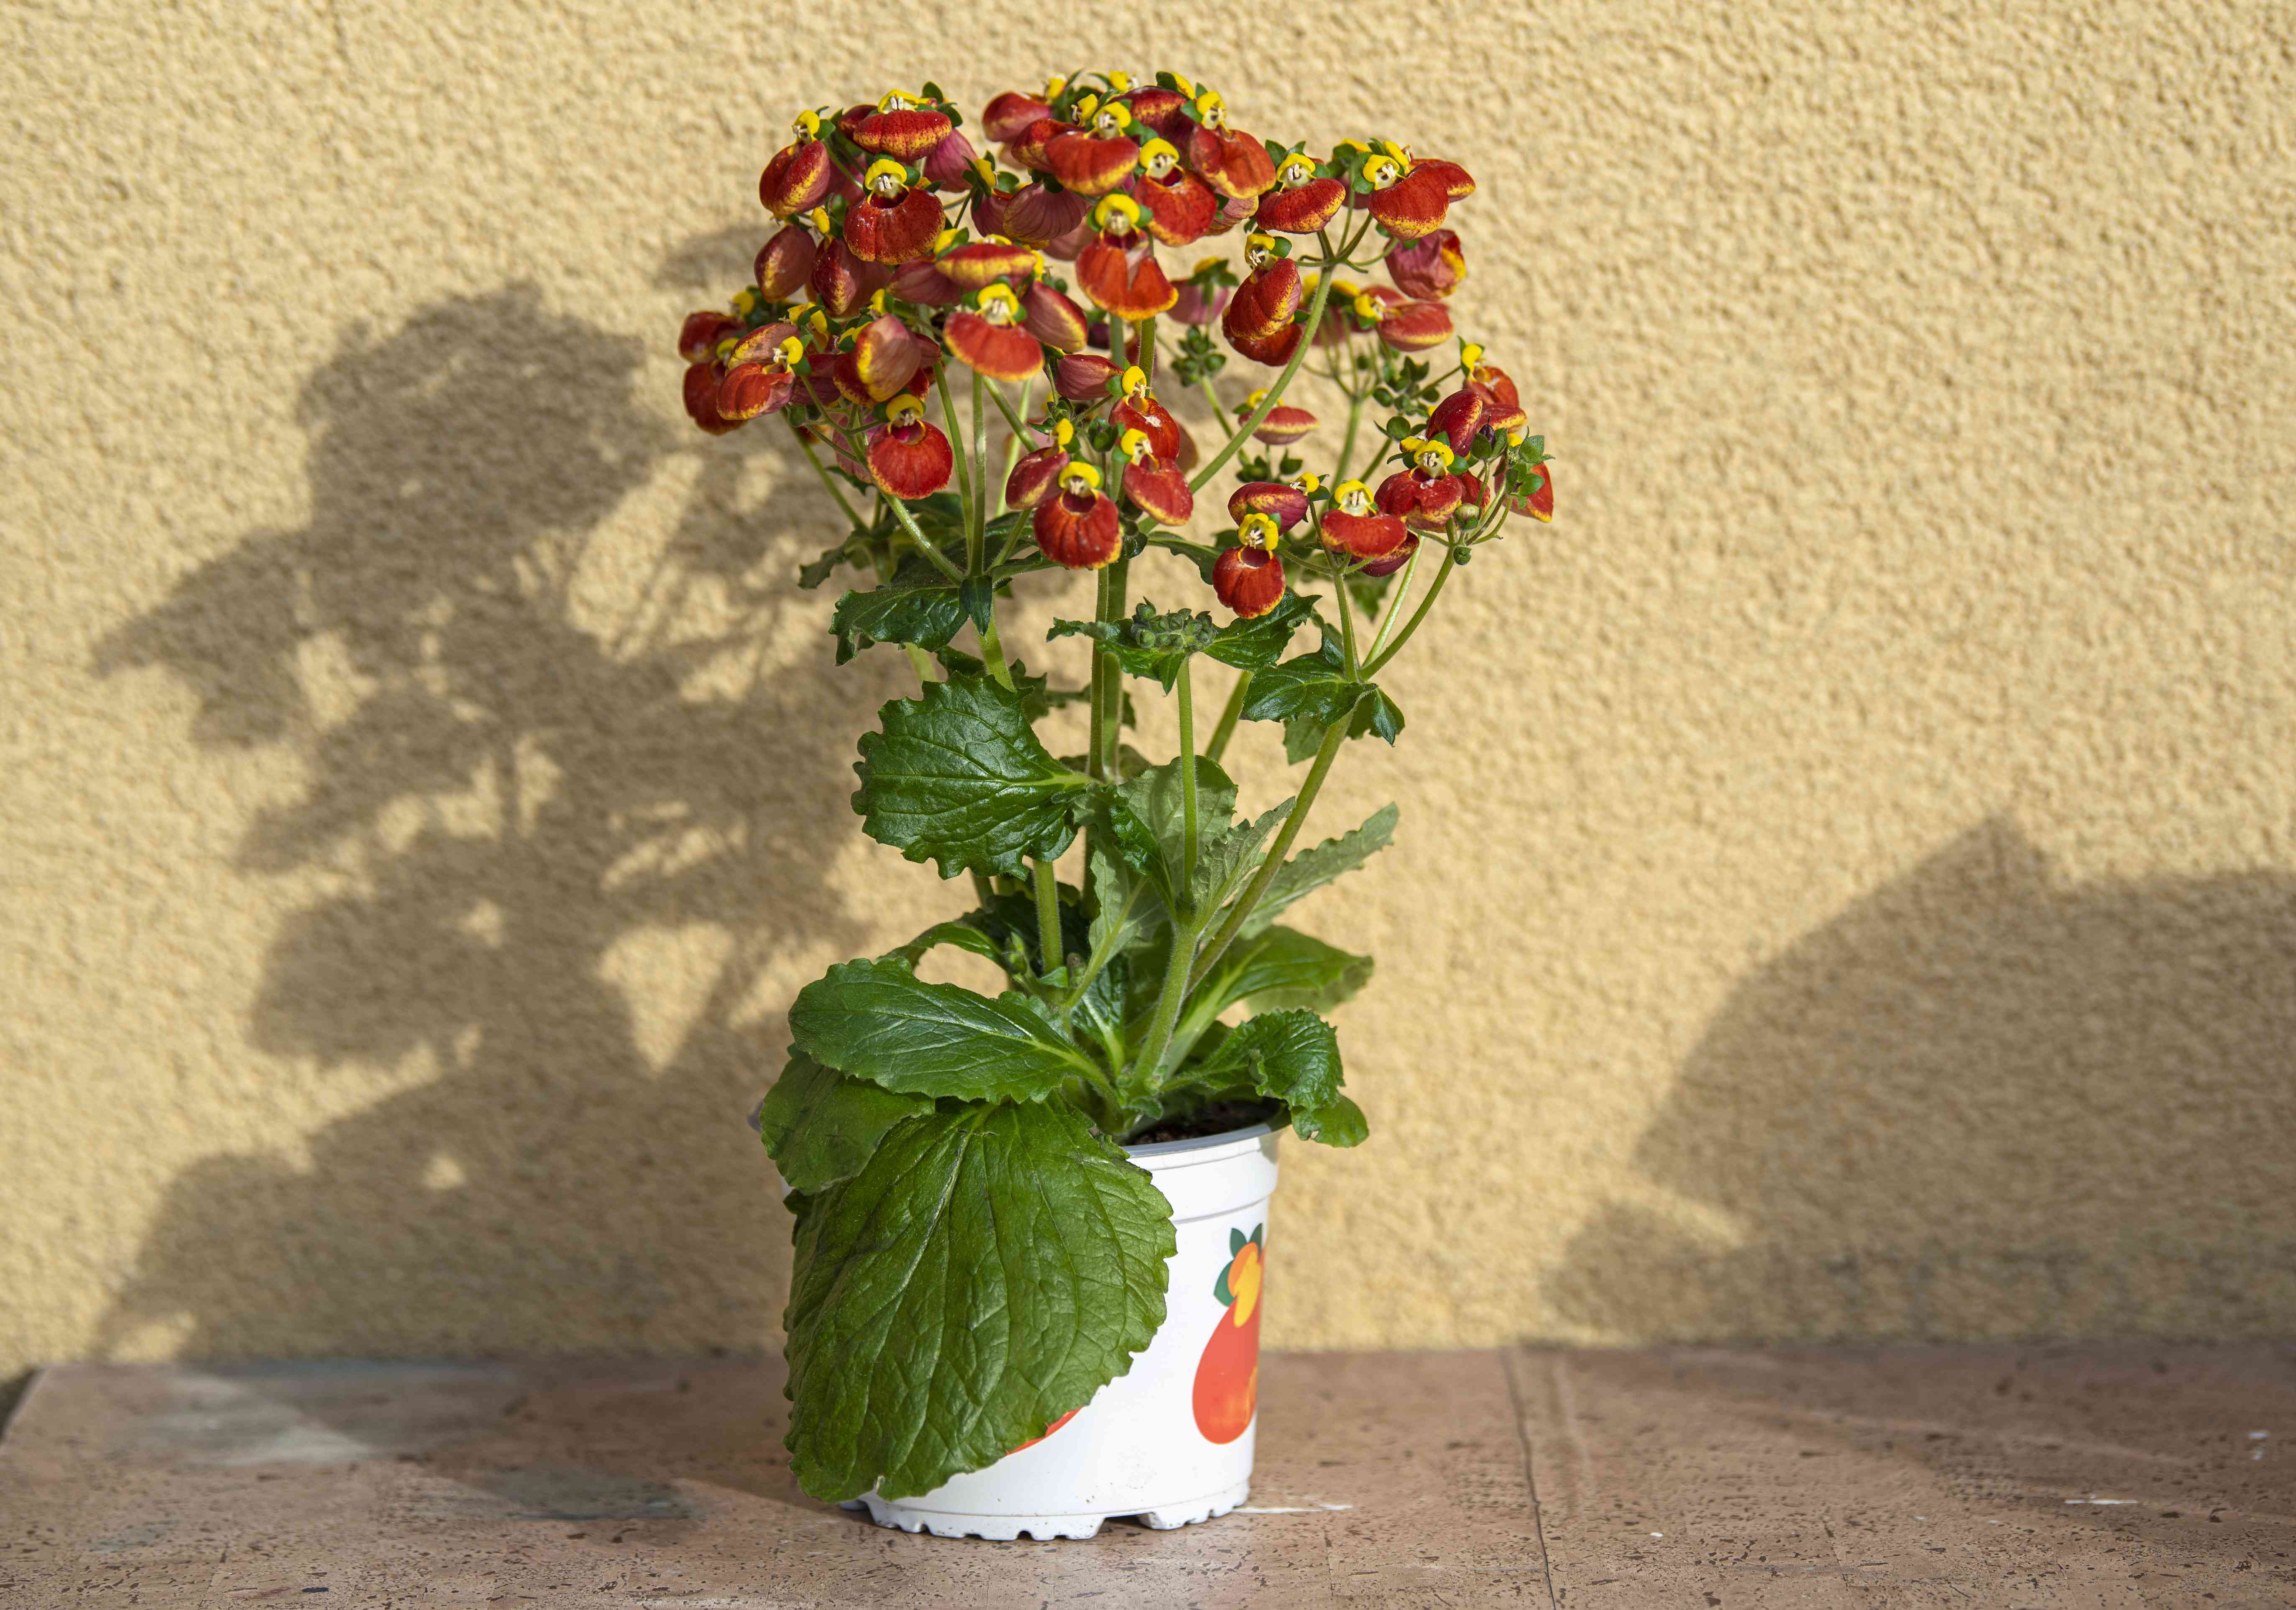 Calceolaria houeplant in white pot with large leaves and red and yellow slipper-like flowers casting shadow